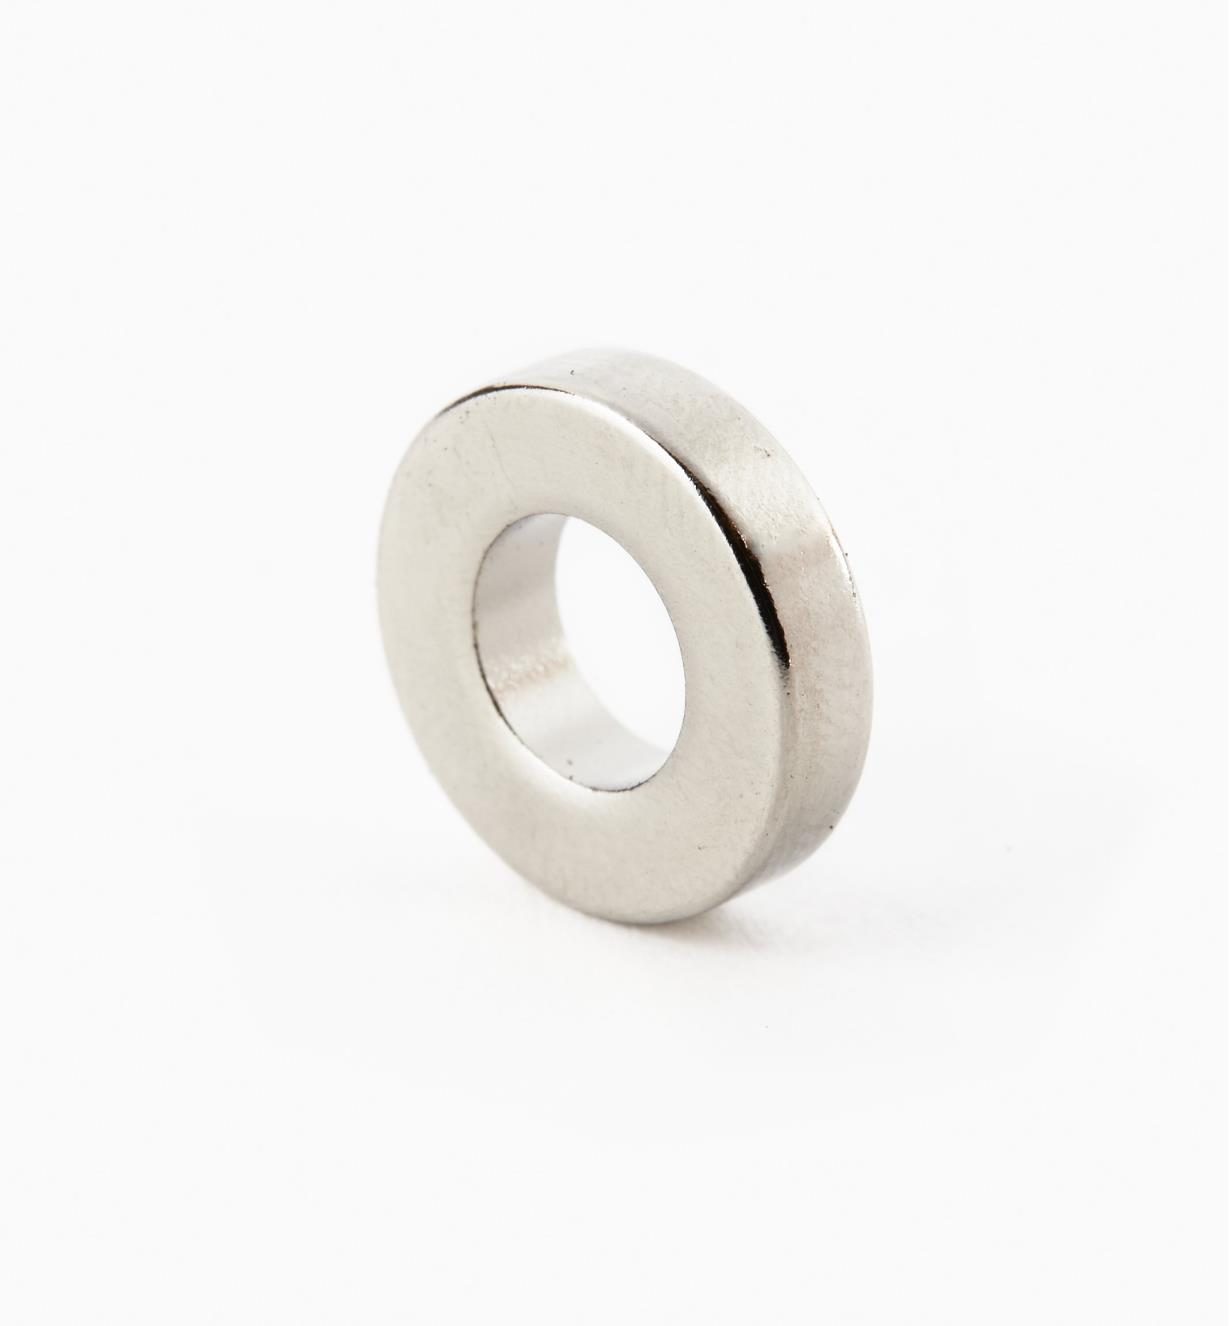 "99K3703 - 1/2"" x 1/8"" (1/4"") Ring Magnet"